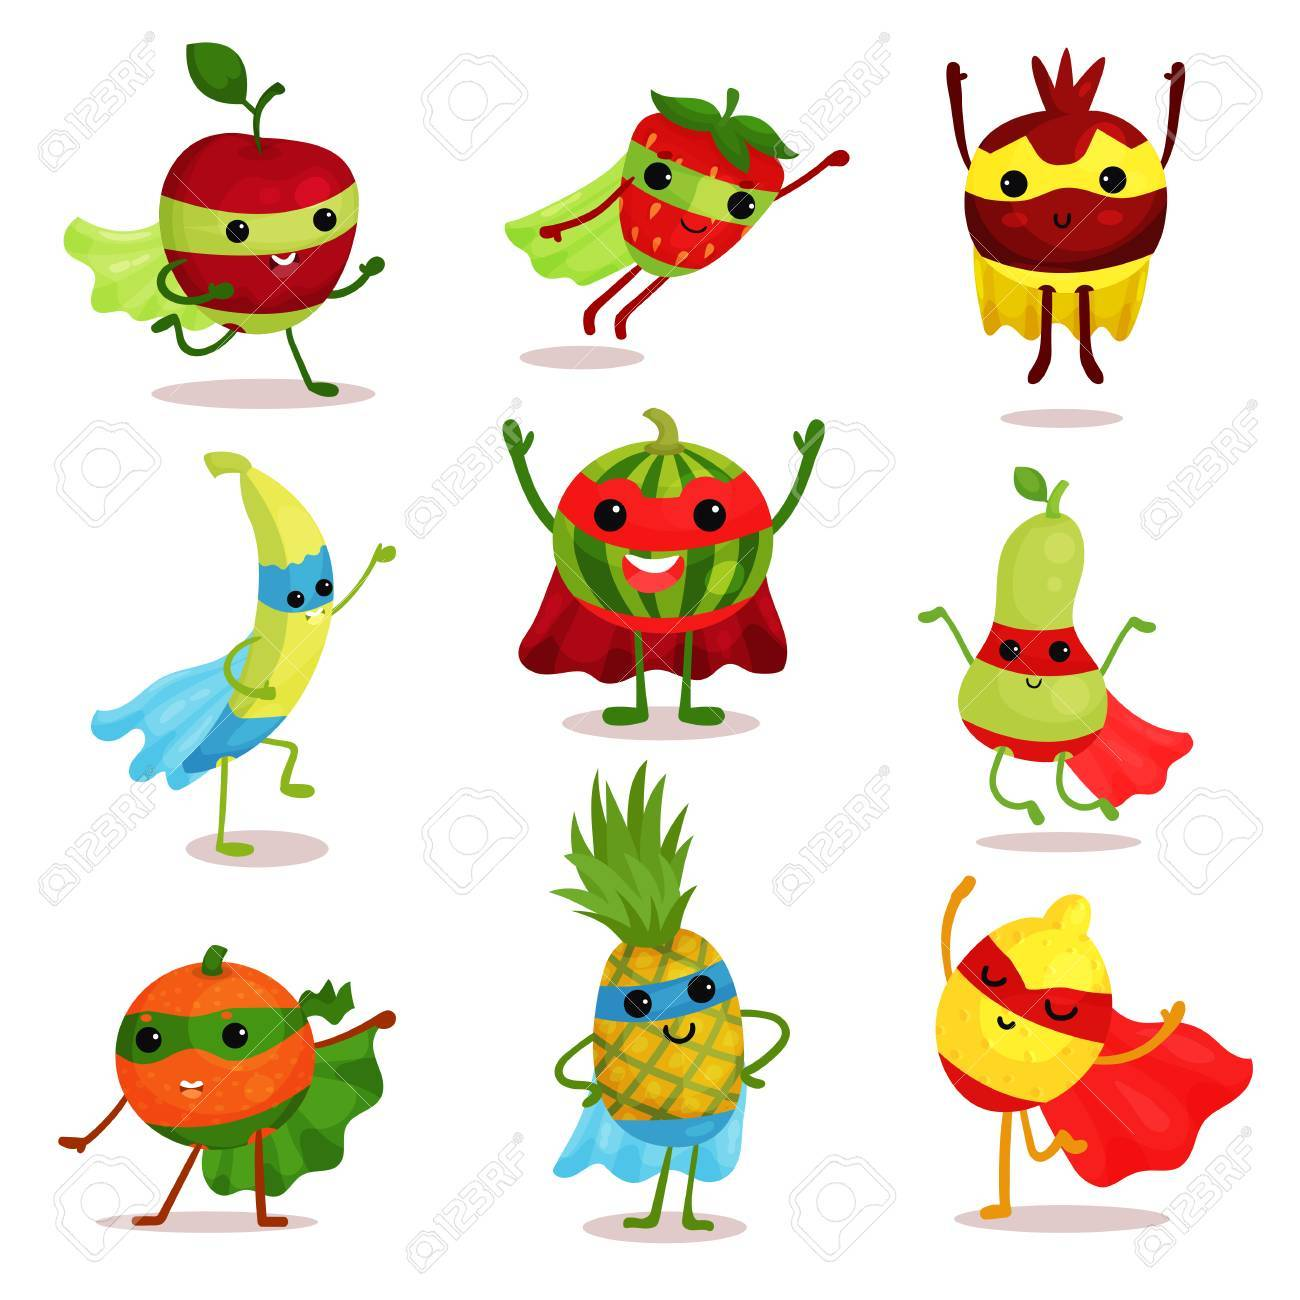 Vector illustration set of happy superhero fruit characters in different poses, card or print elements - 89465664